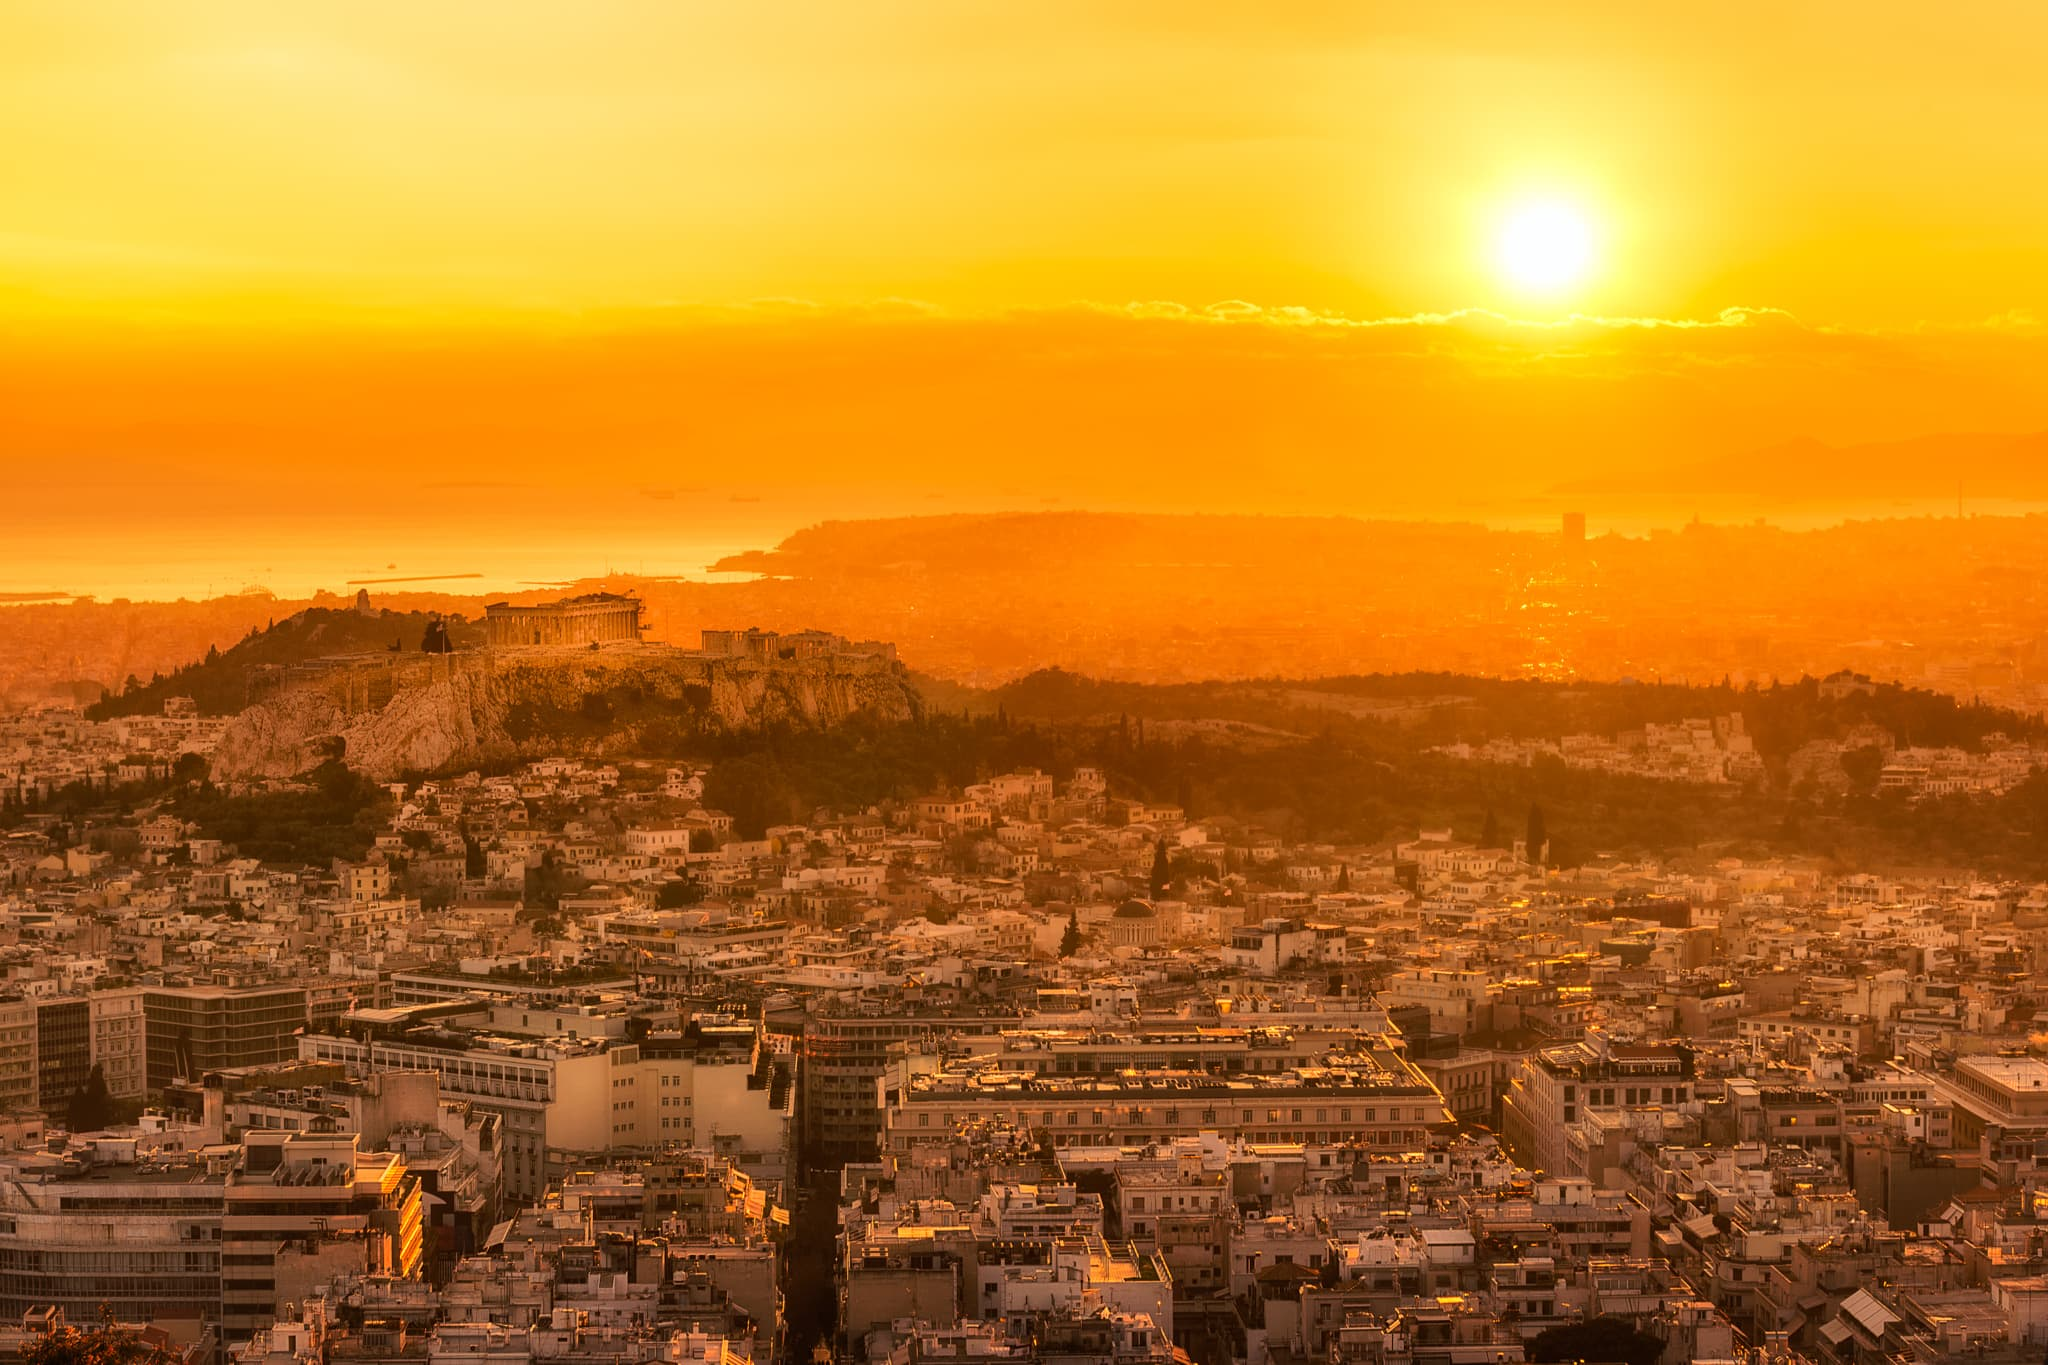 Athens – a romantic sunset seen from the Lycabettus Hill | Athens, Greece